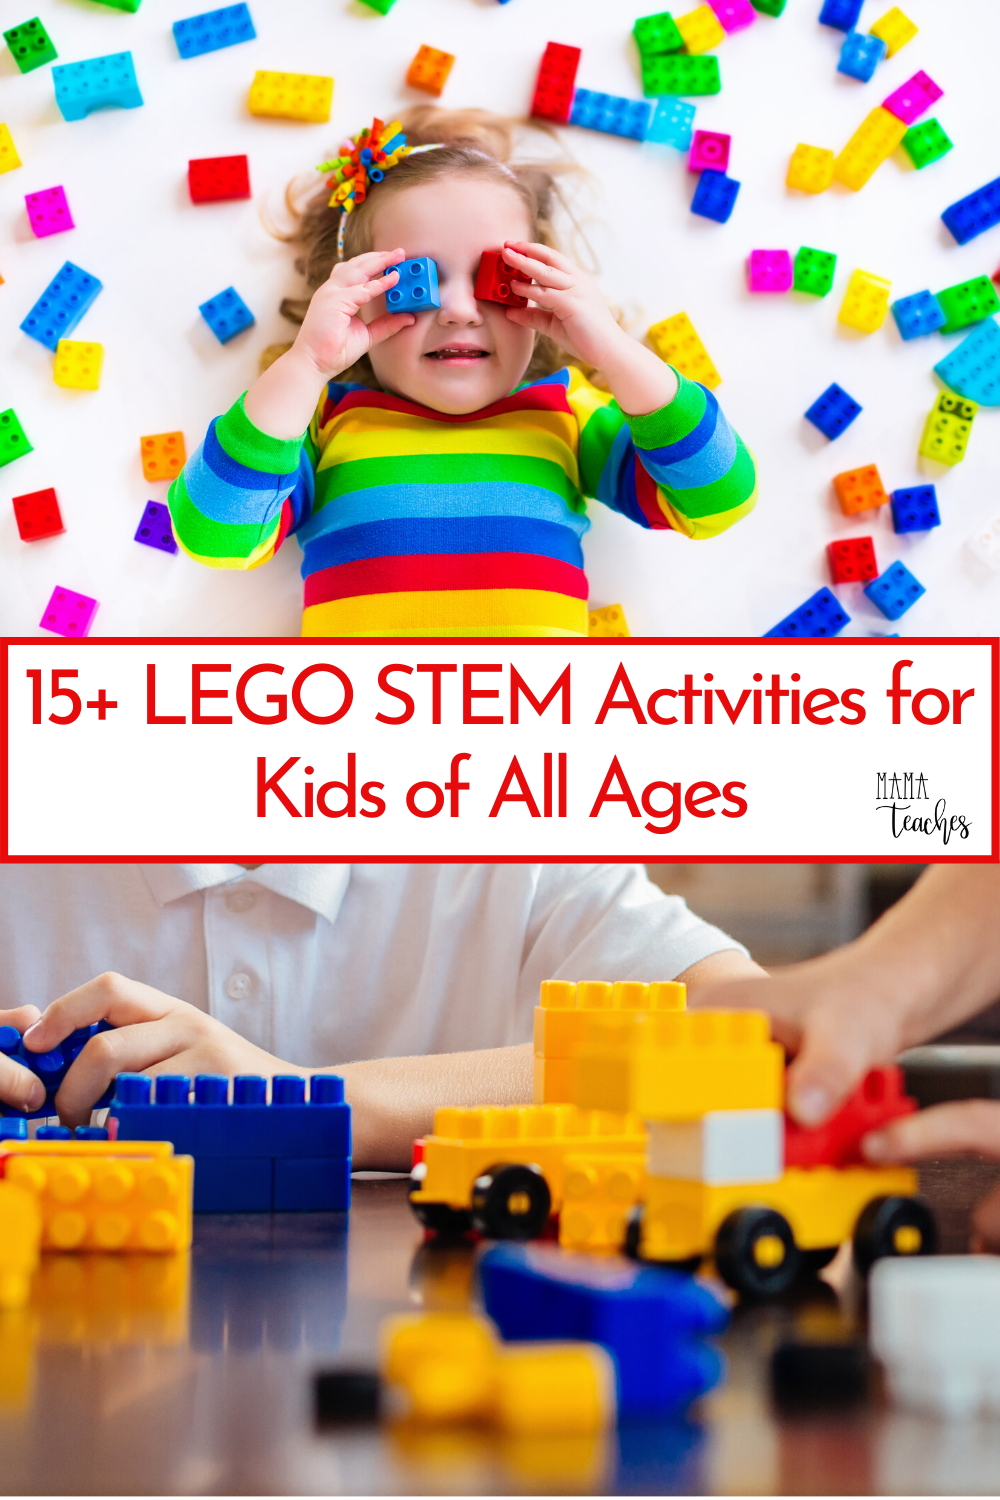 LEGO-STEM-Activities-for-Kids-of-All-Ages